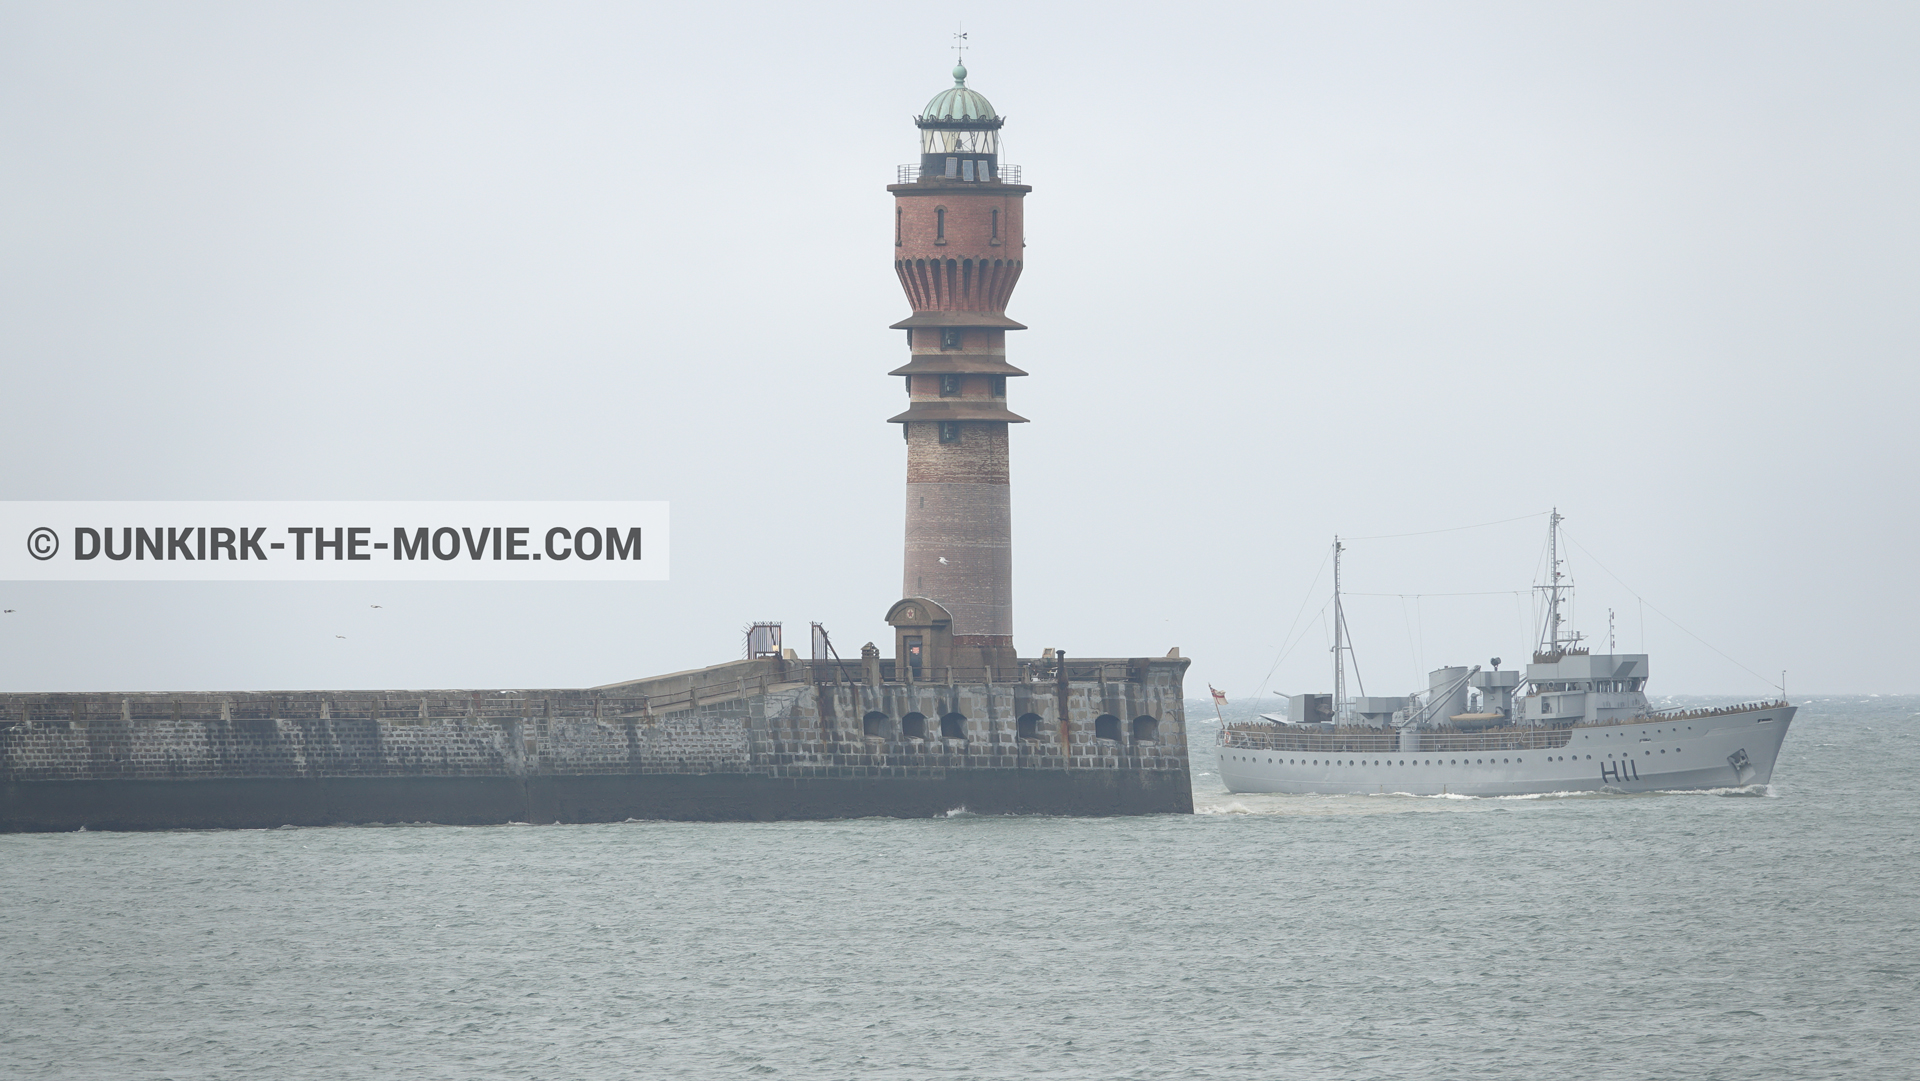 Picture with H11 - MLV Castor, St Pol sur Mer lighthouse,  from behind the scene of the Dunkirk movie by Nolan